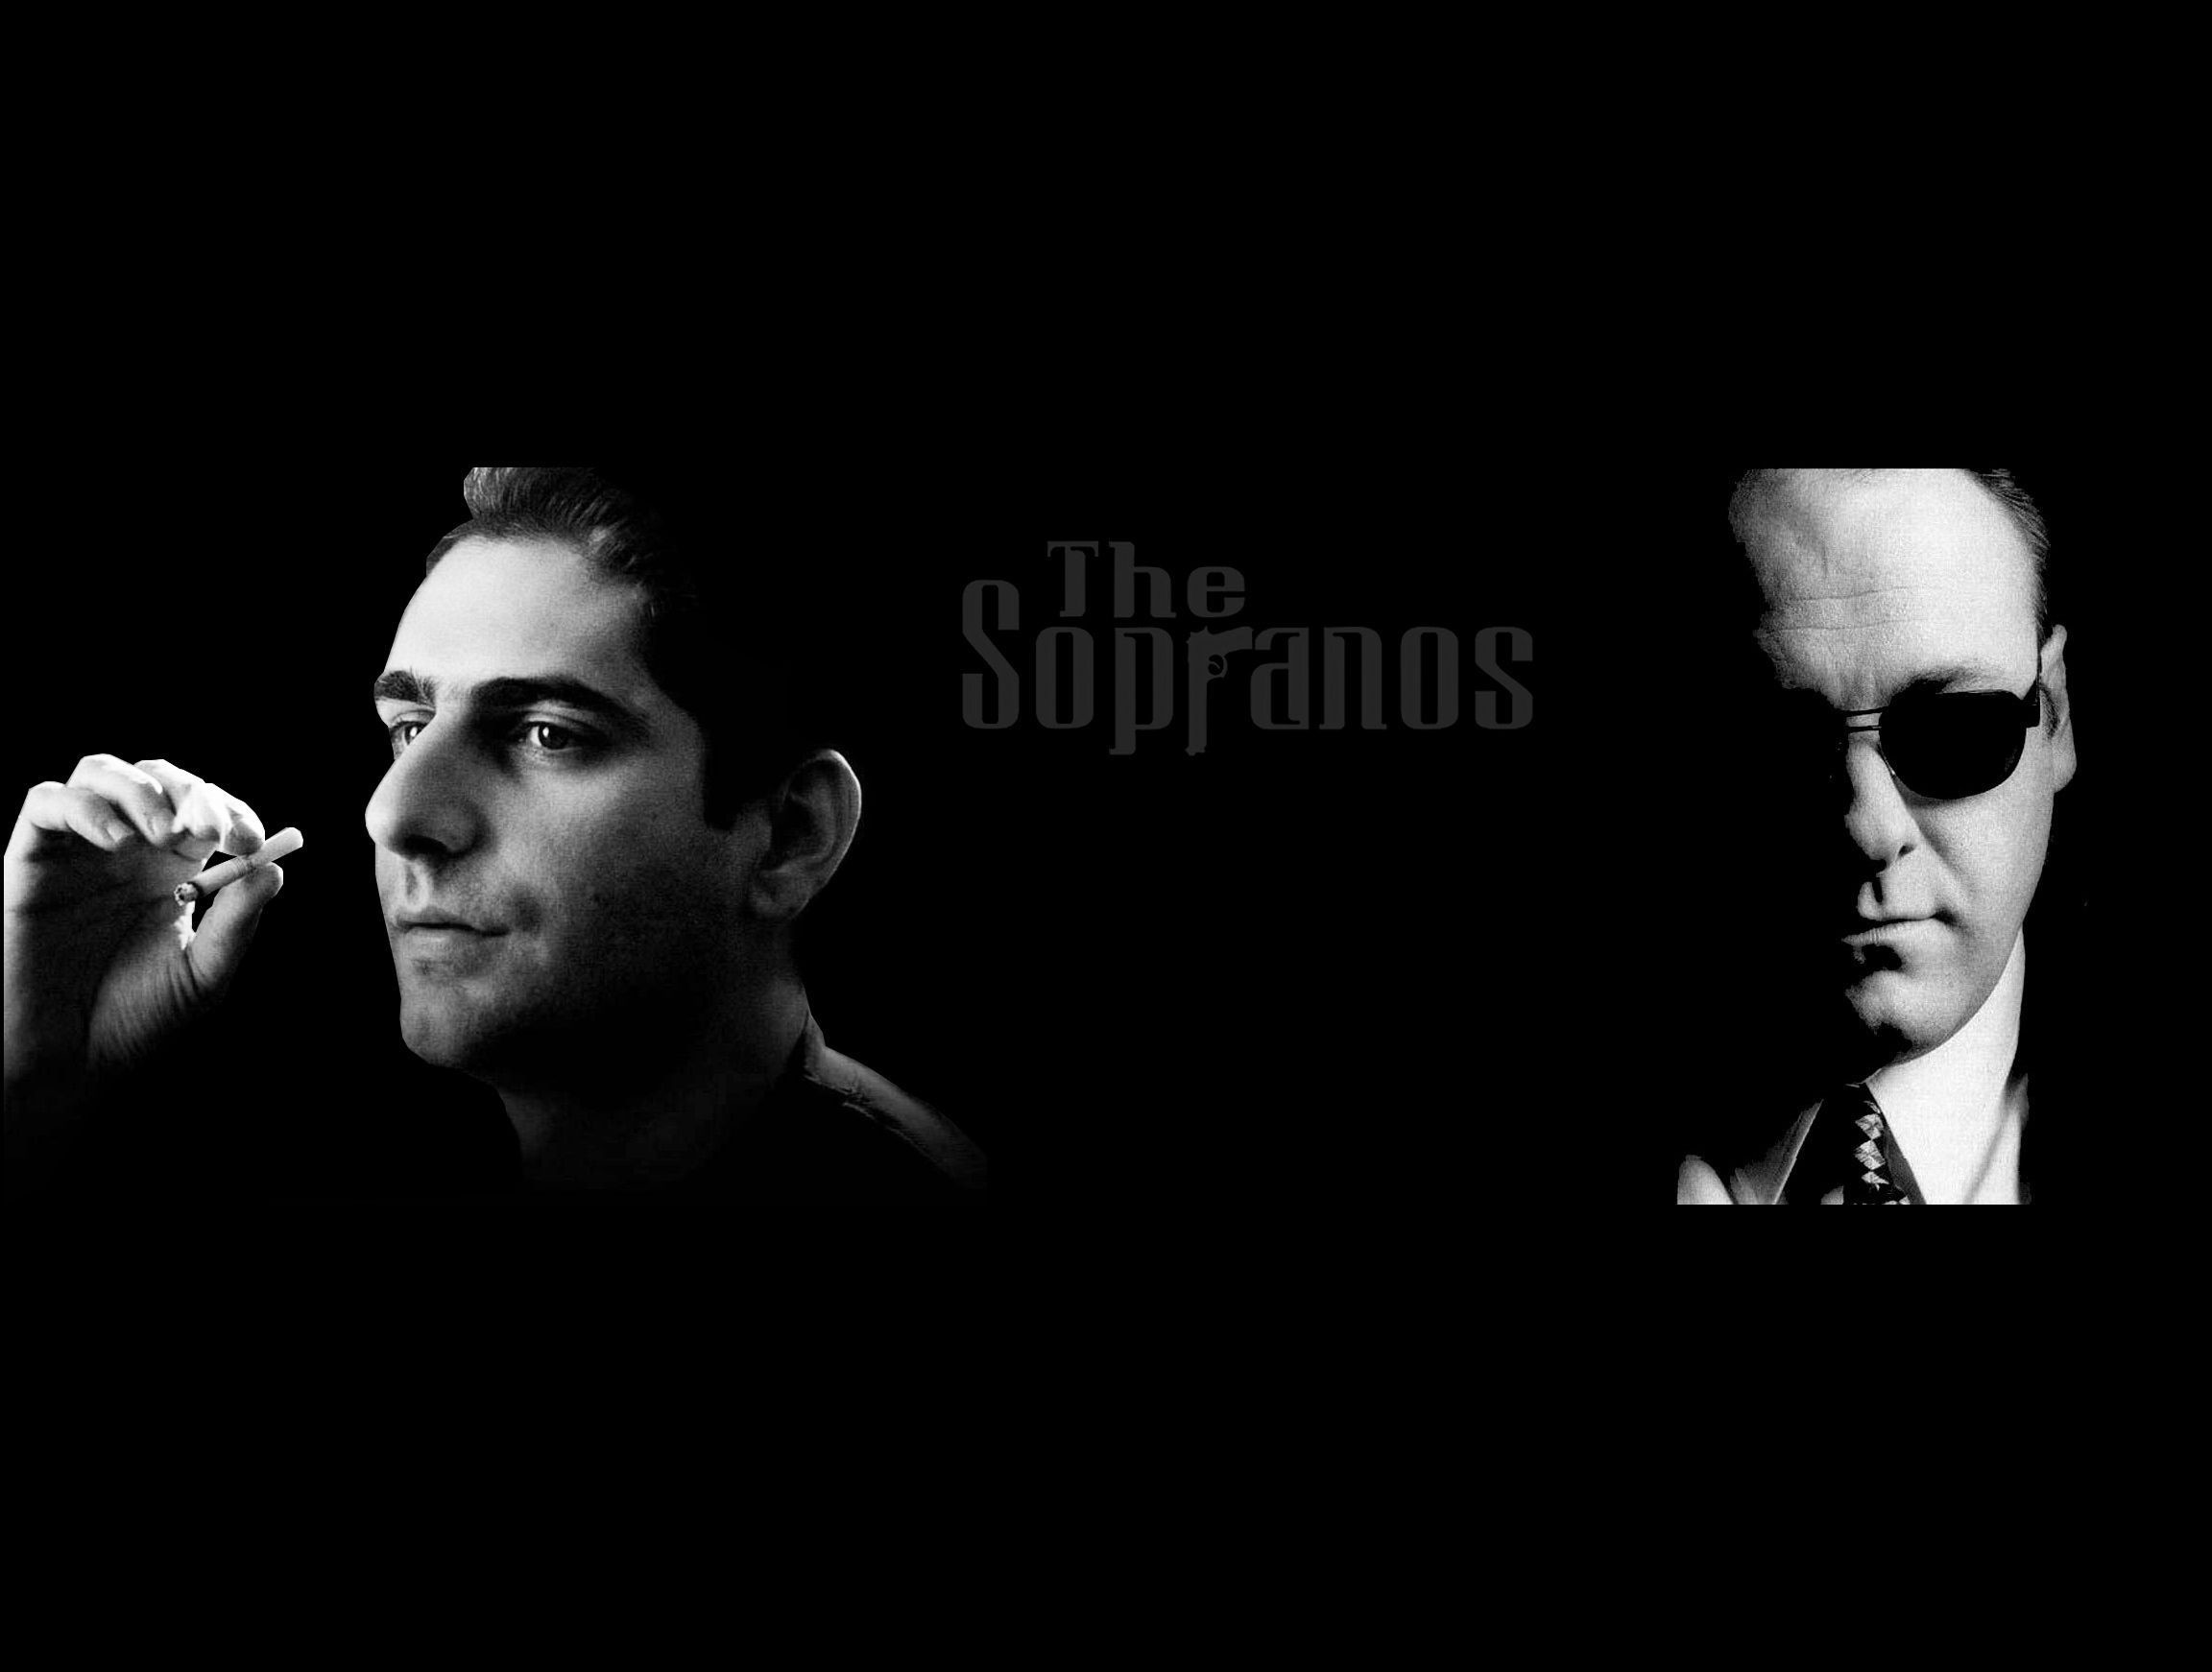 Res: 2304x1742, The Sopranos Wallpapers - Wallpaper Cave